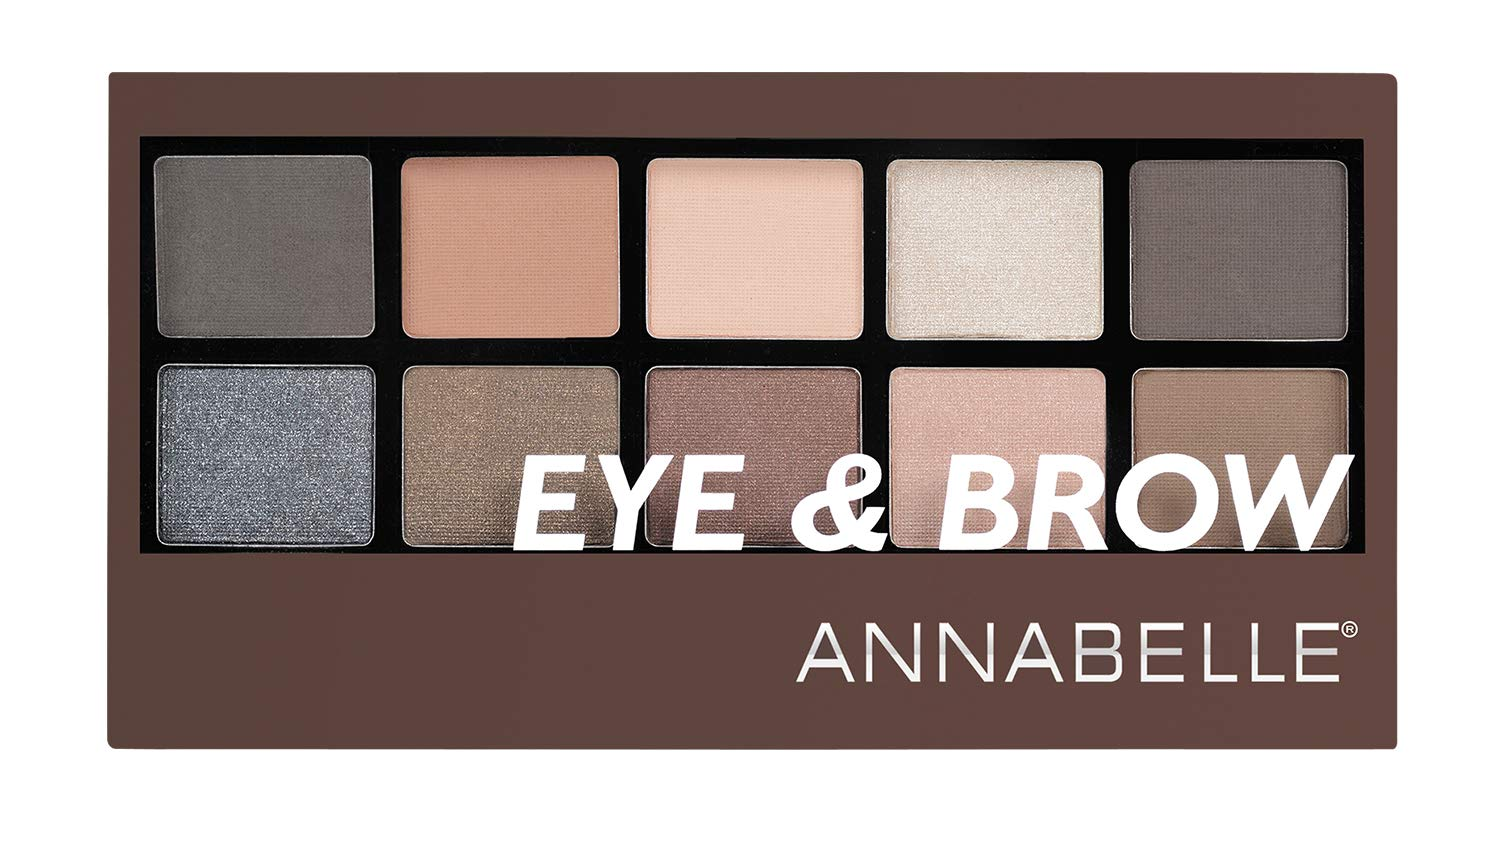 Annabelle Eye & Brow Palette, 9.3 g Groupe Marcelle Inc.